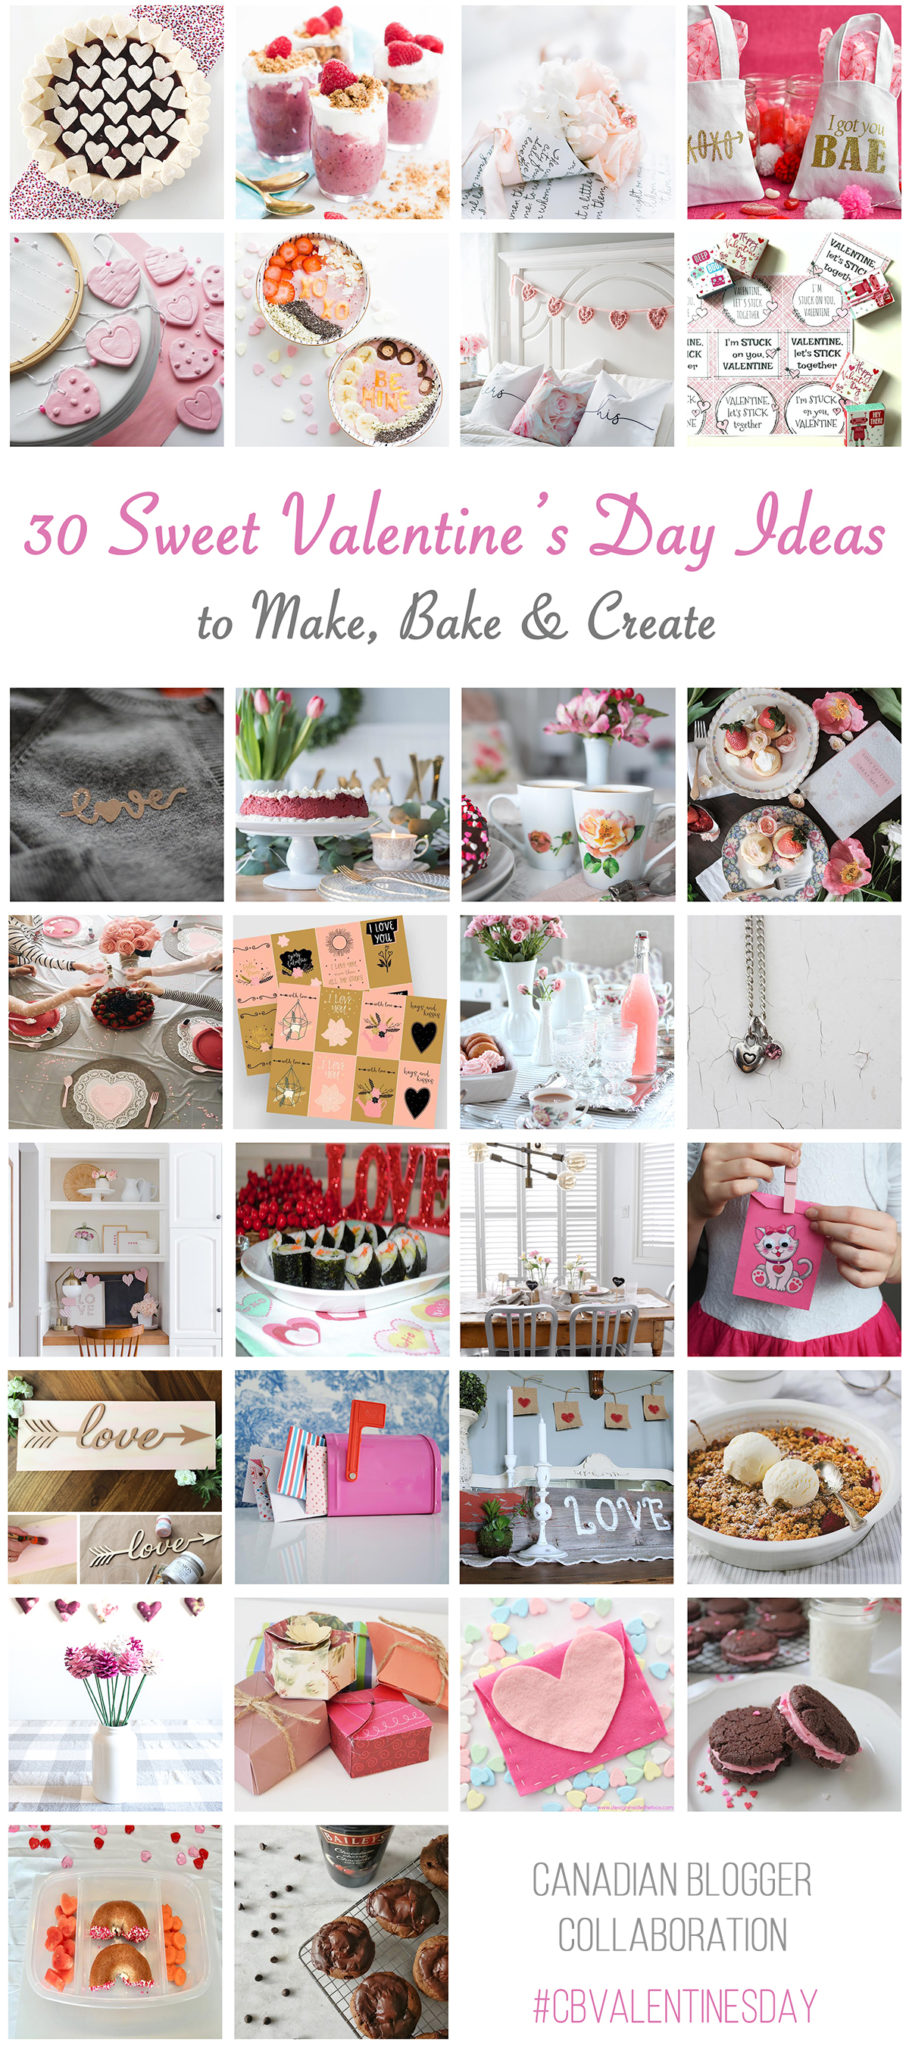 Collage of 30 Valentine's Day ideas to make bake and create